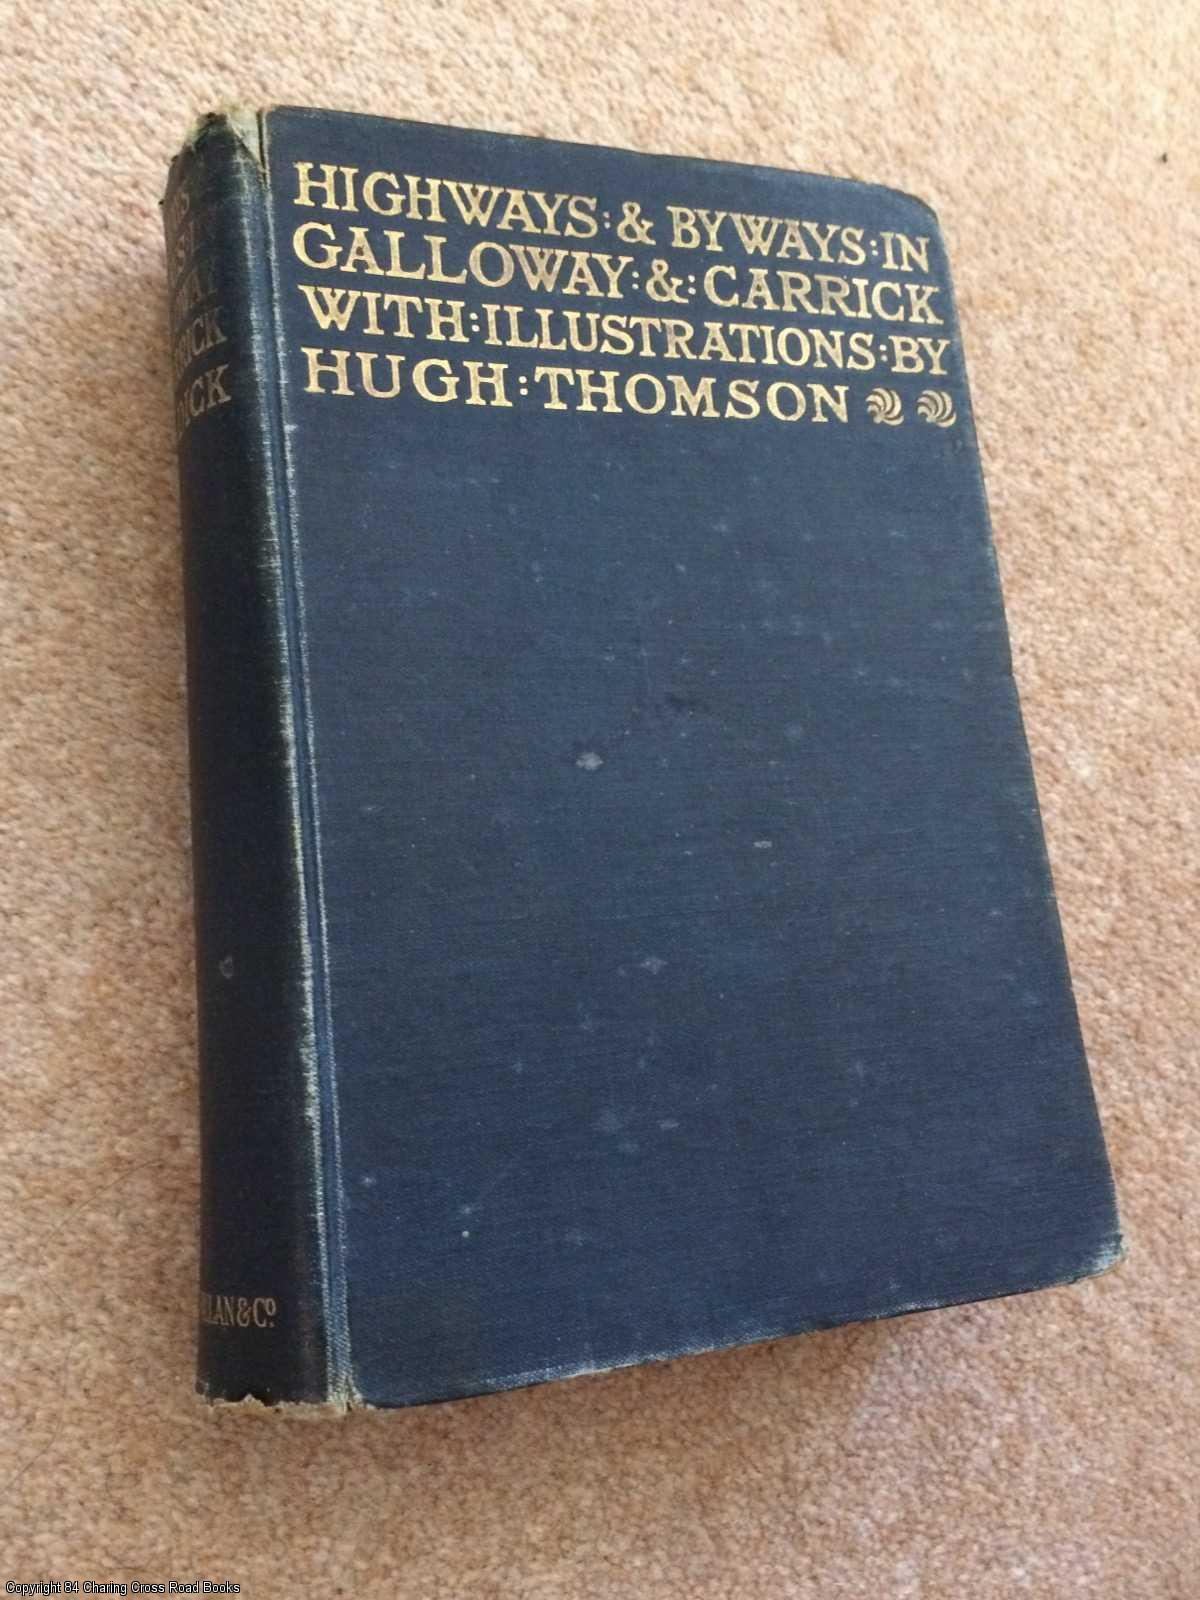 DICK, C H - Highways and Byways in Galloway and Carrick